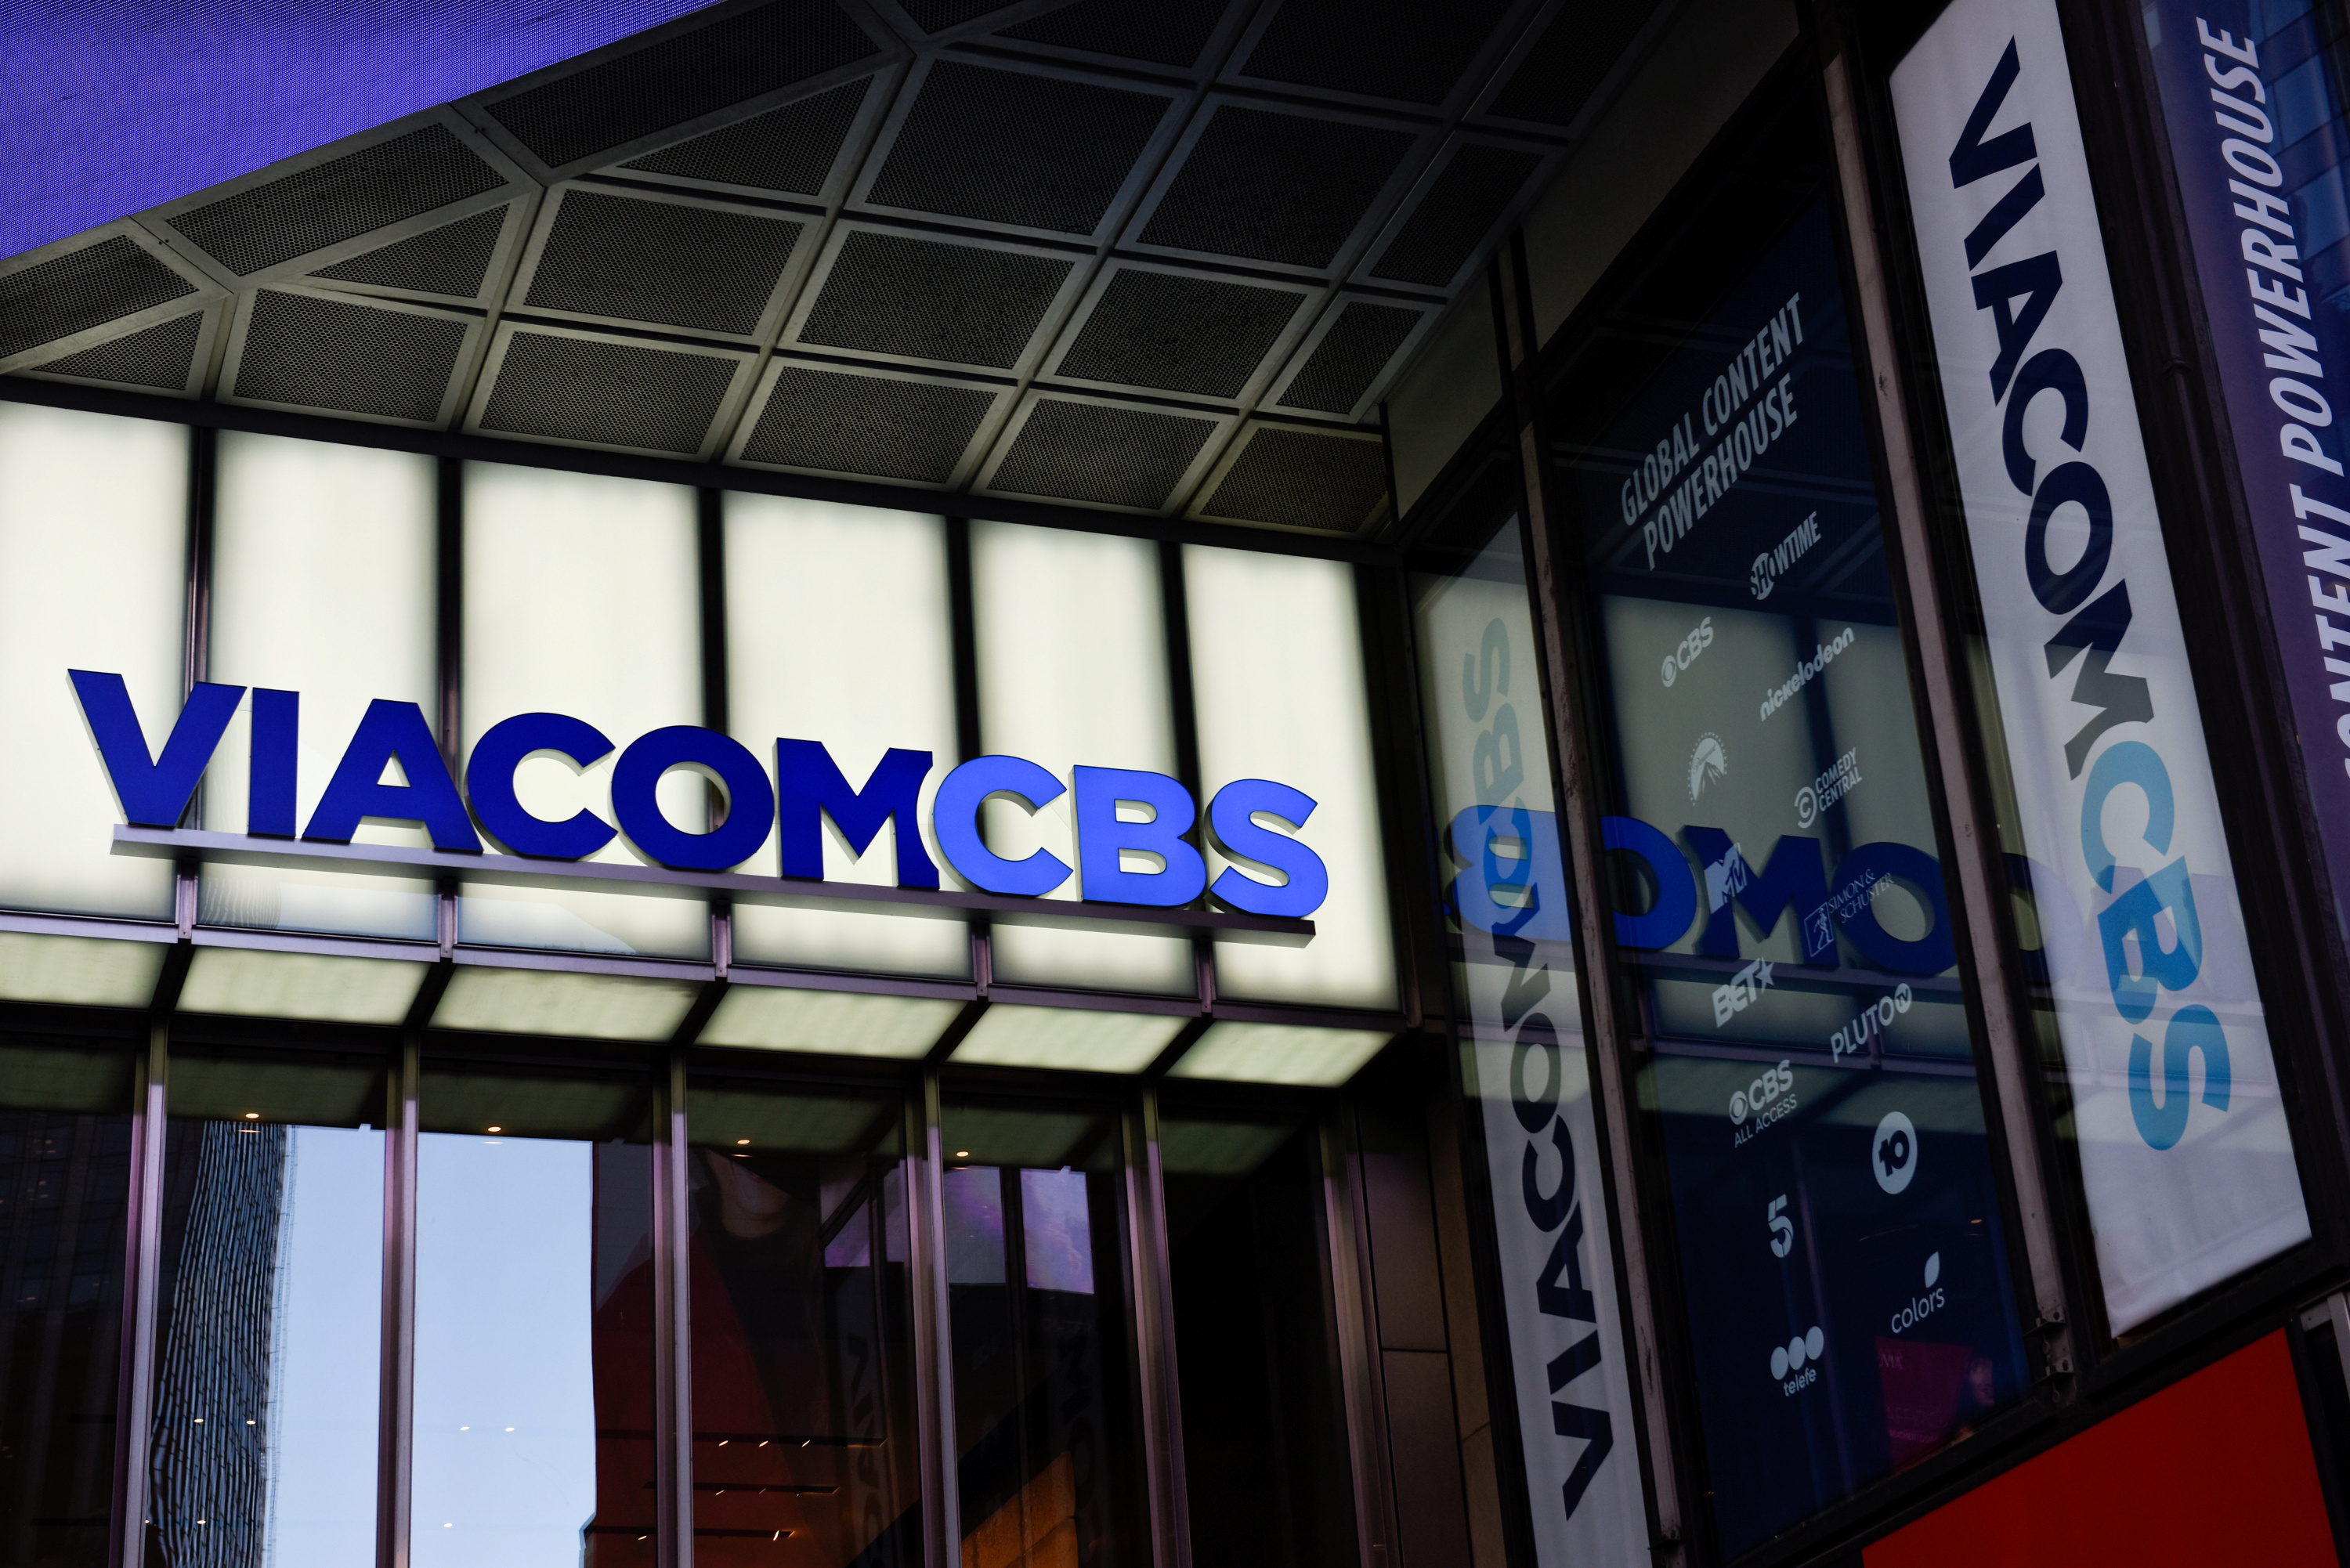 ViacomCBS headquarters is pictured in New York, New York, U.S. December 5, 2019. REUTERS/Kate Munsch